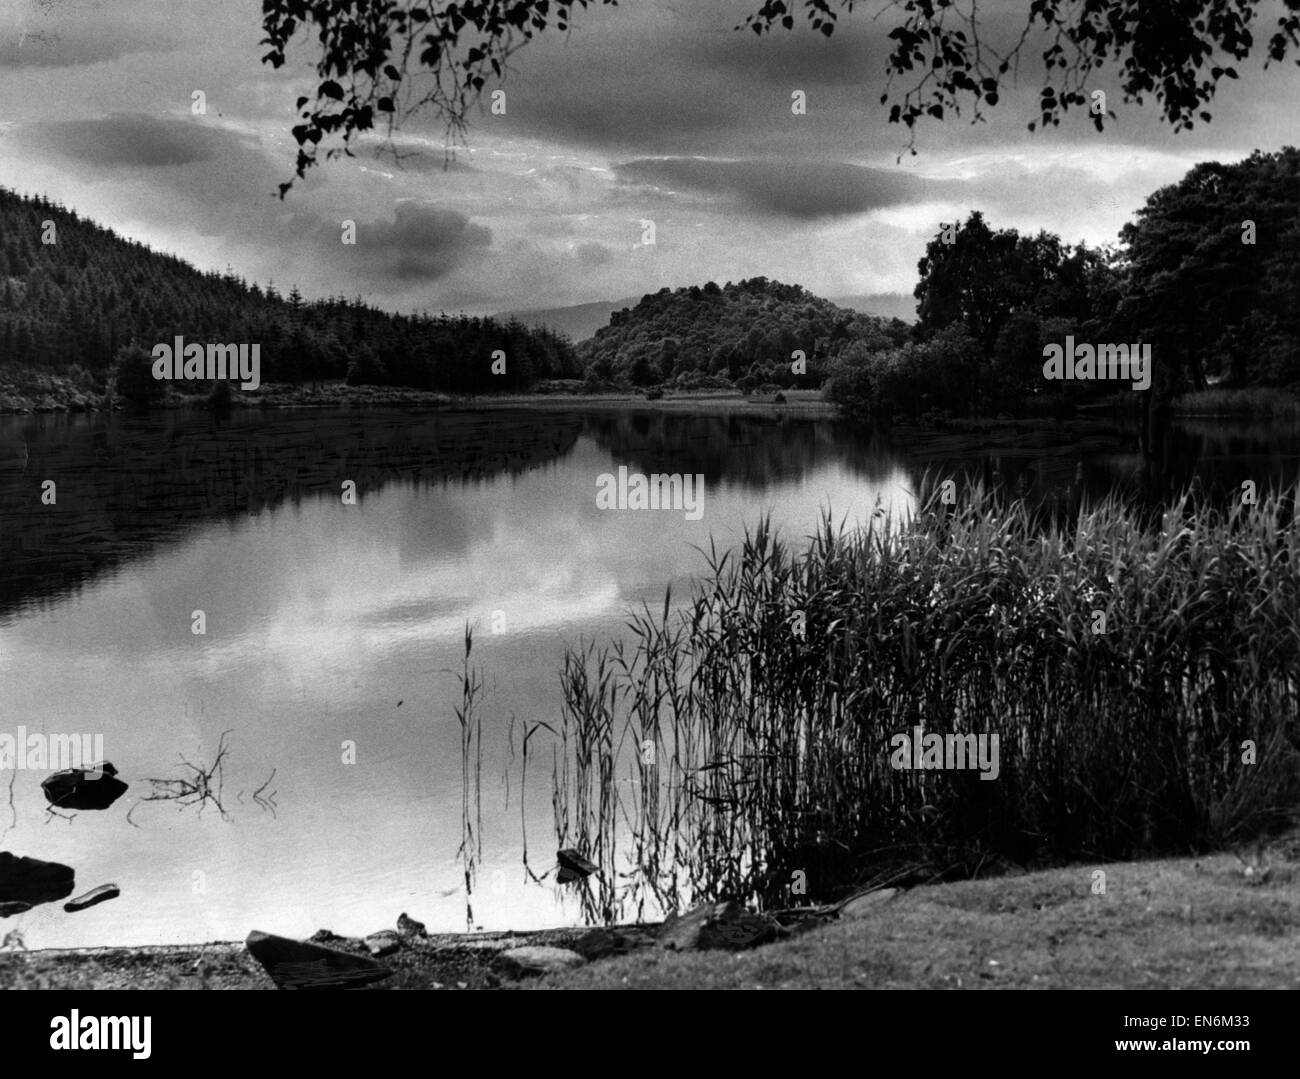 Loch Ard, a body of fresh water in the Loch Lomond and the Trossachs National Park, Stirling District, Scotland, - Stock Image